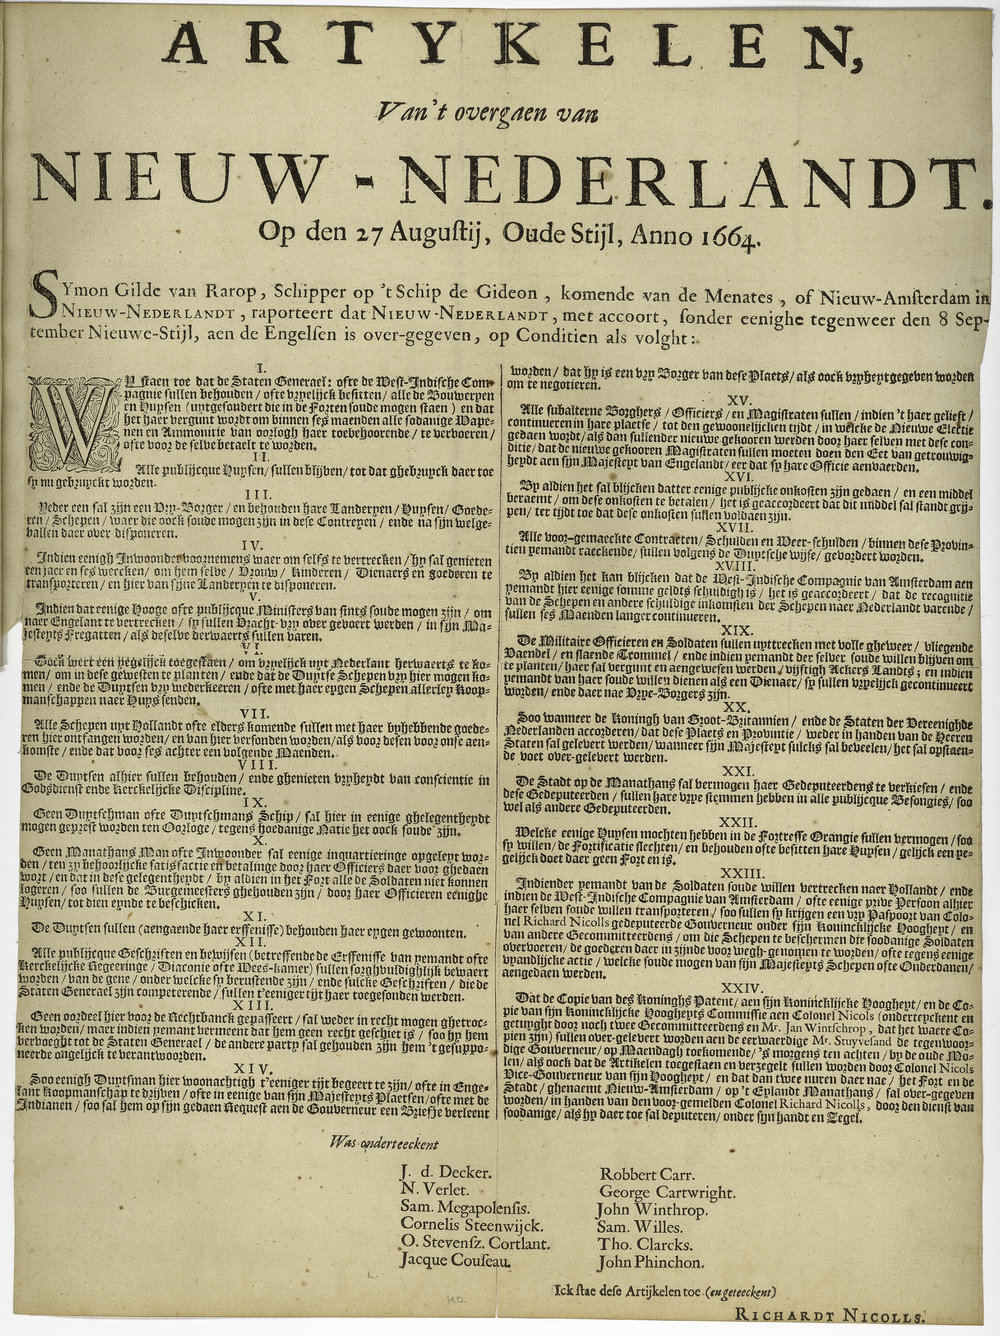 "Articles about the transfer of New Netherland on the 27th of August, Old Style, Anno 1664 . The articles were agreed to on September 8th, by six deputies commissioned by Director-general Stuyvesant and his council, and seven English commissioners, including Admiral Richard Nicolls. They are commonly called the articles of capitulation and Nicolls described them as the ""Articles, Whereupon the Citty and Fort Amsterdam and the Province of the New Netherlands Were Surrendered,"" but this broadside, probably printed in Holland, used the word ""Overgaen"" meaning transfer. Courtesy the  New York Public Library ."